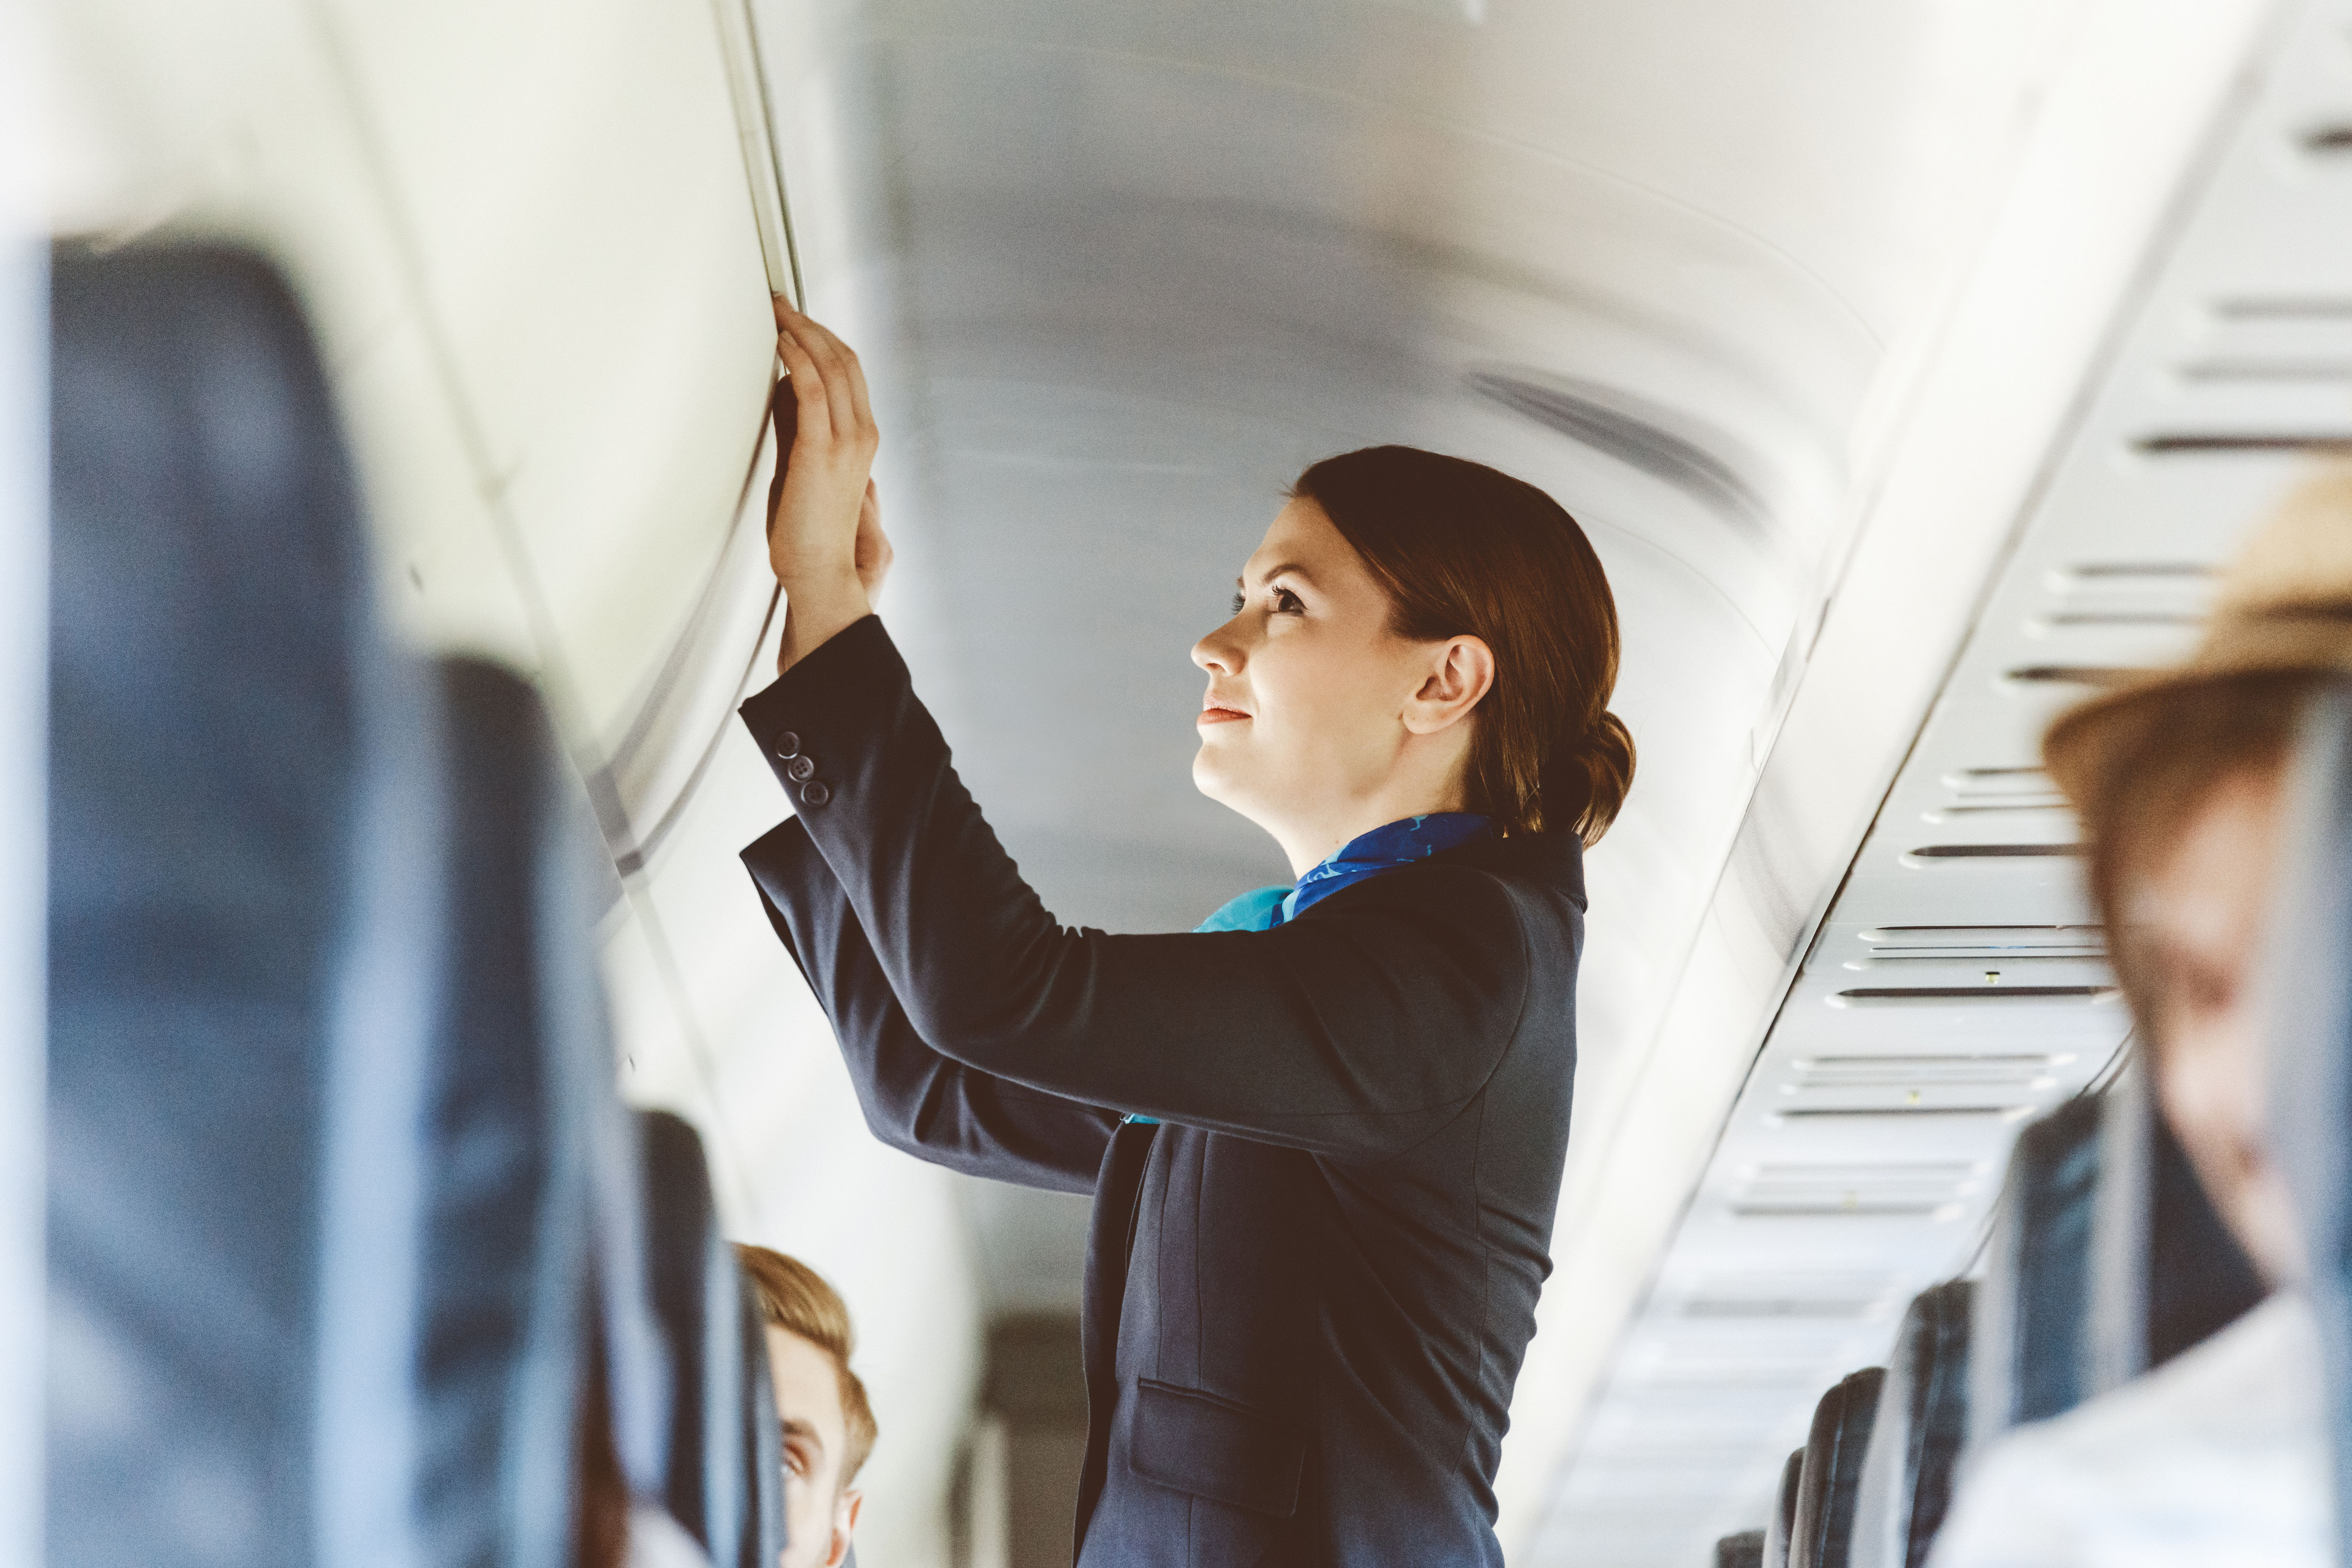 This Airline's Flight Attendants Now Accept Tips